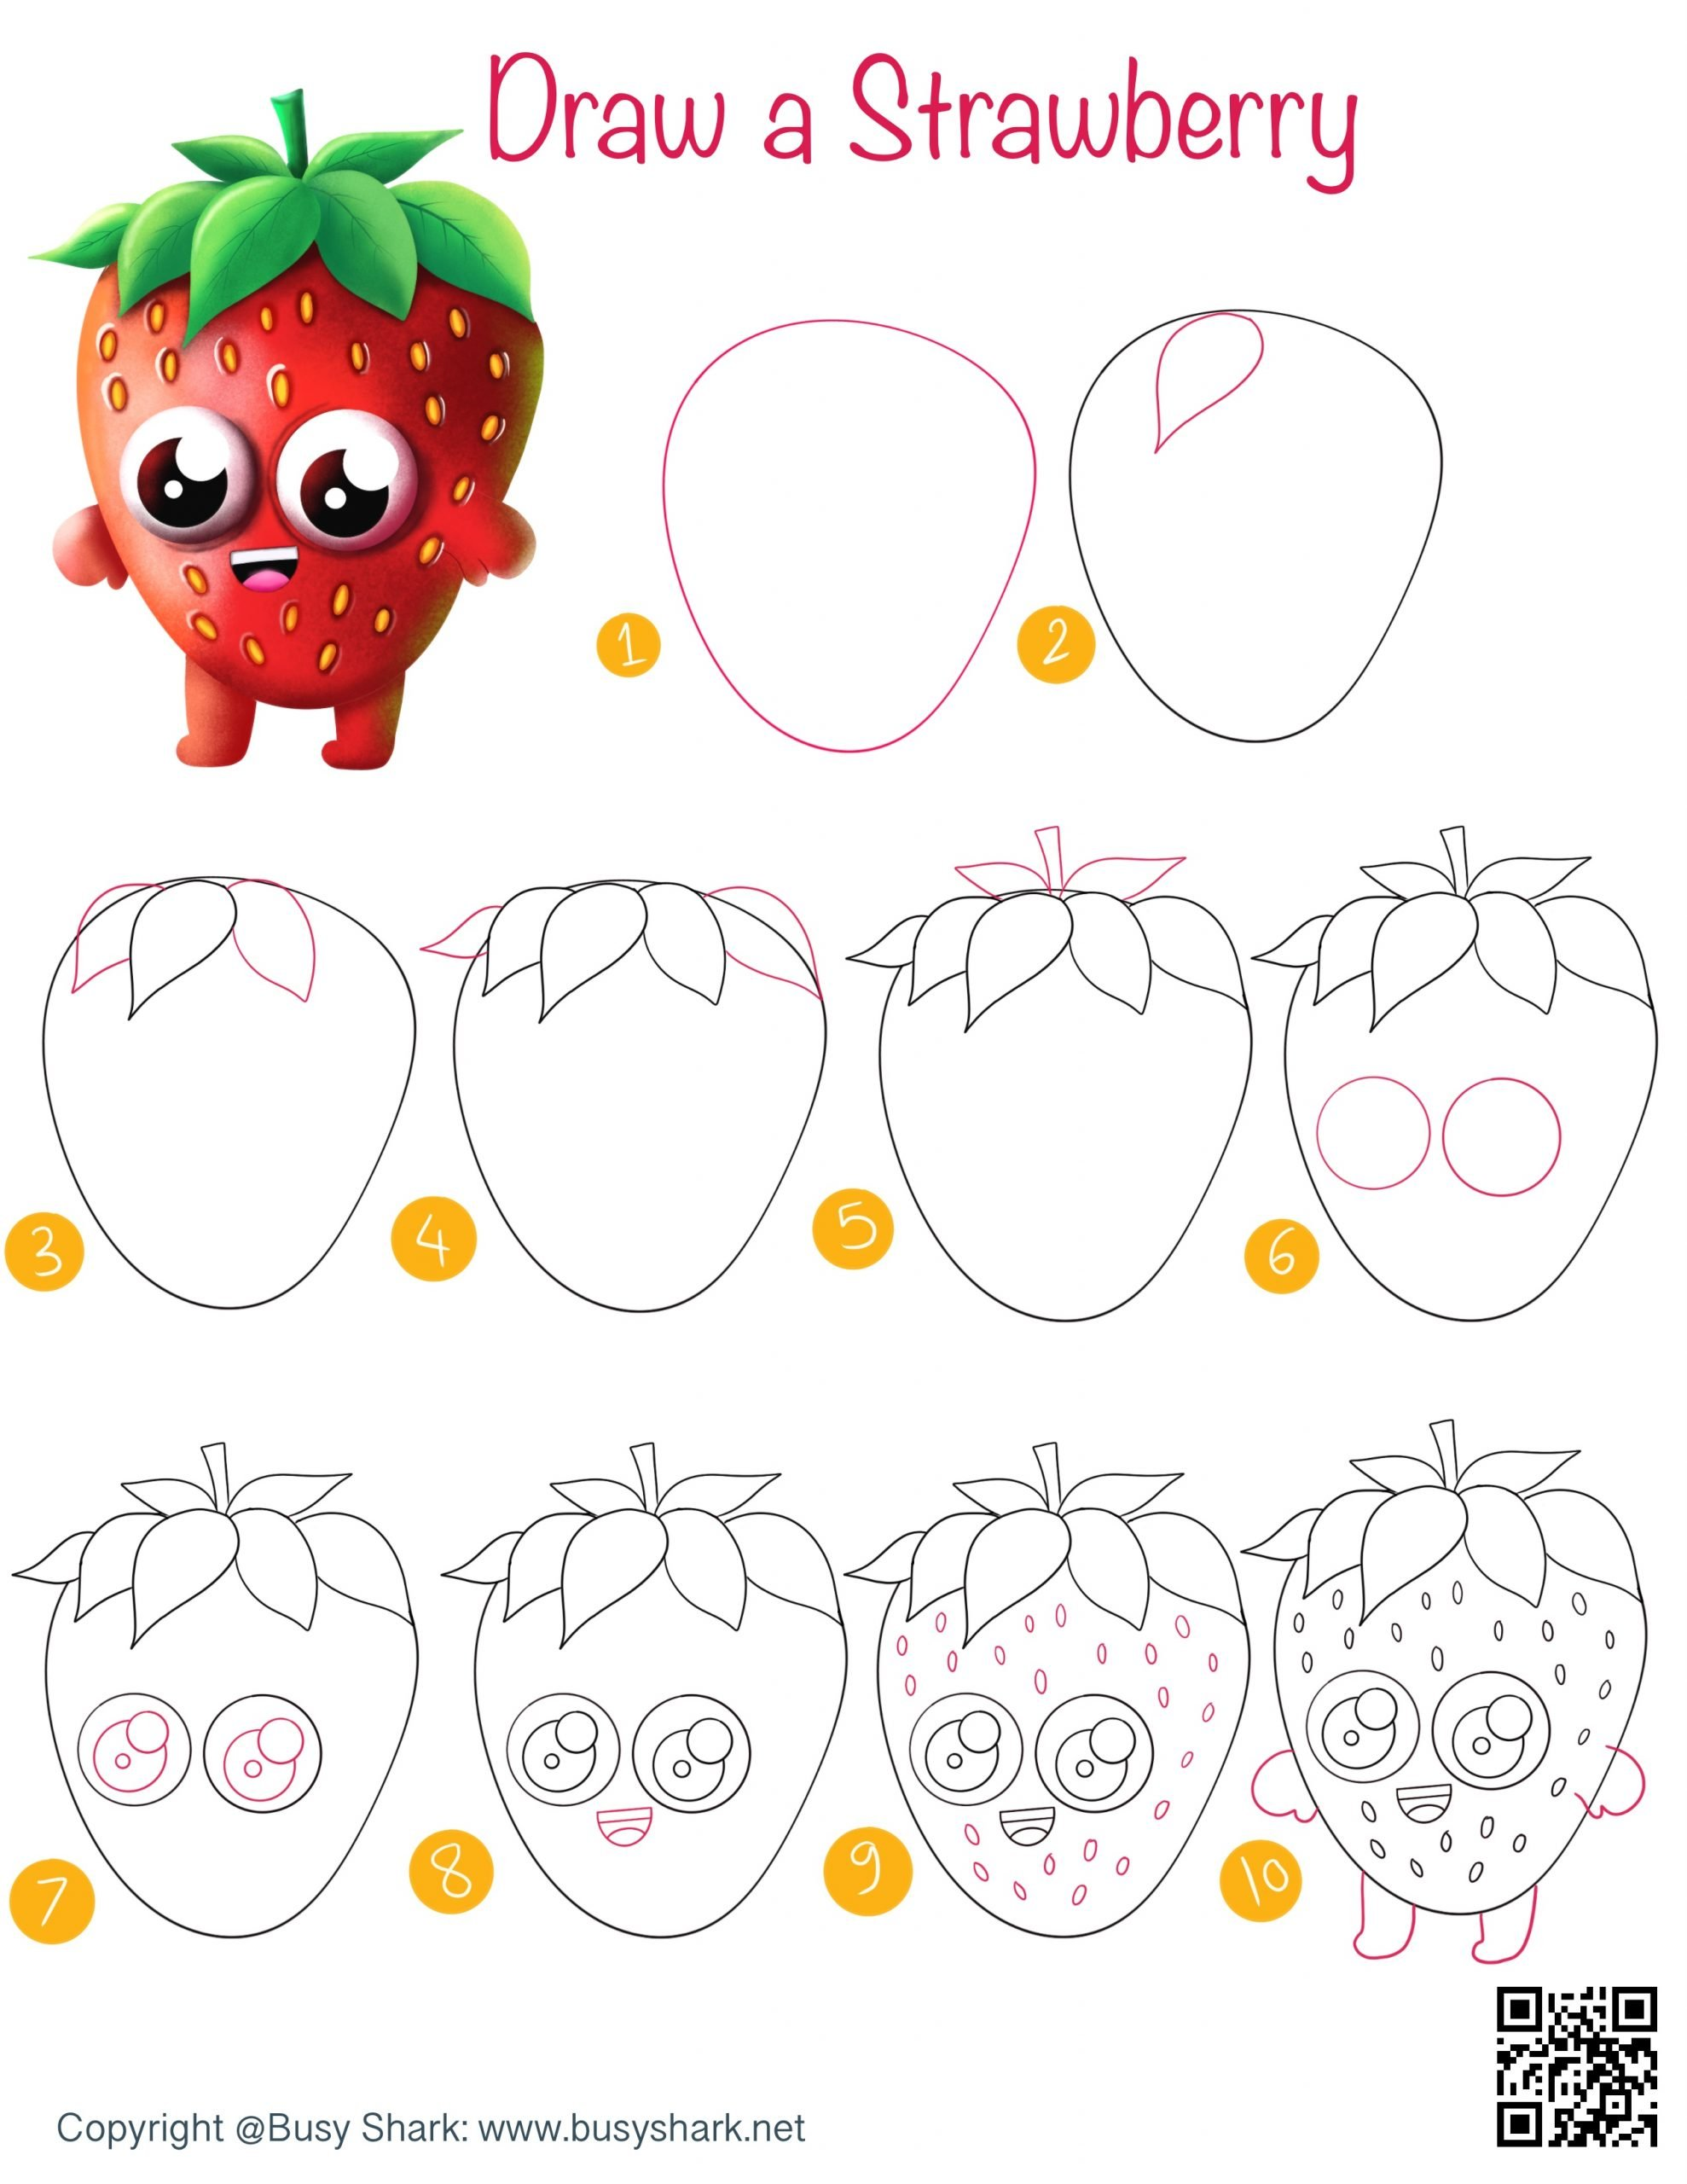 Strawberry cartoon drawing tutorial for kids step by step